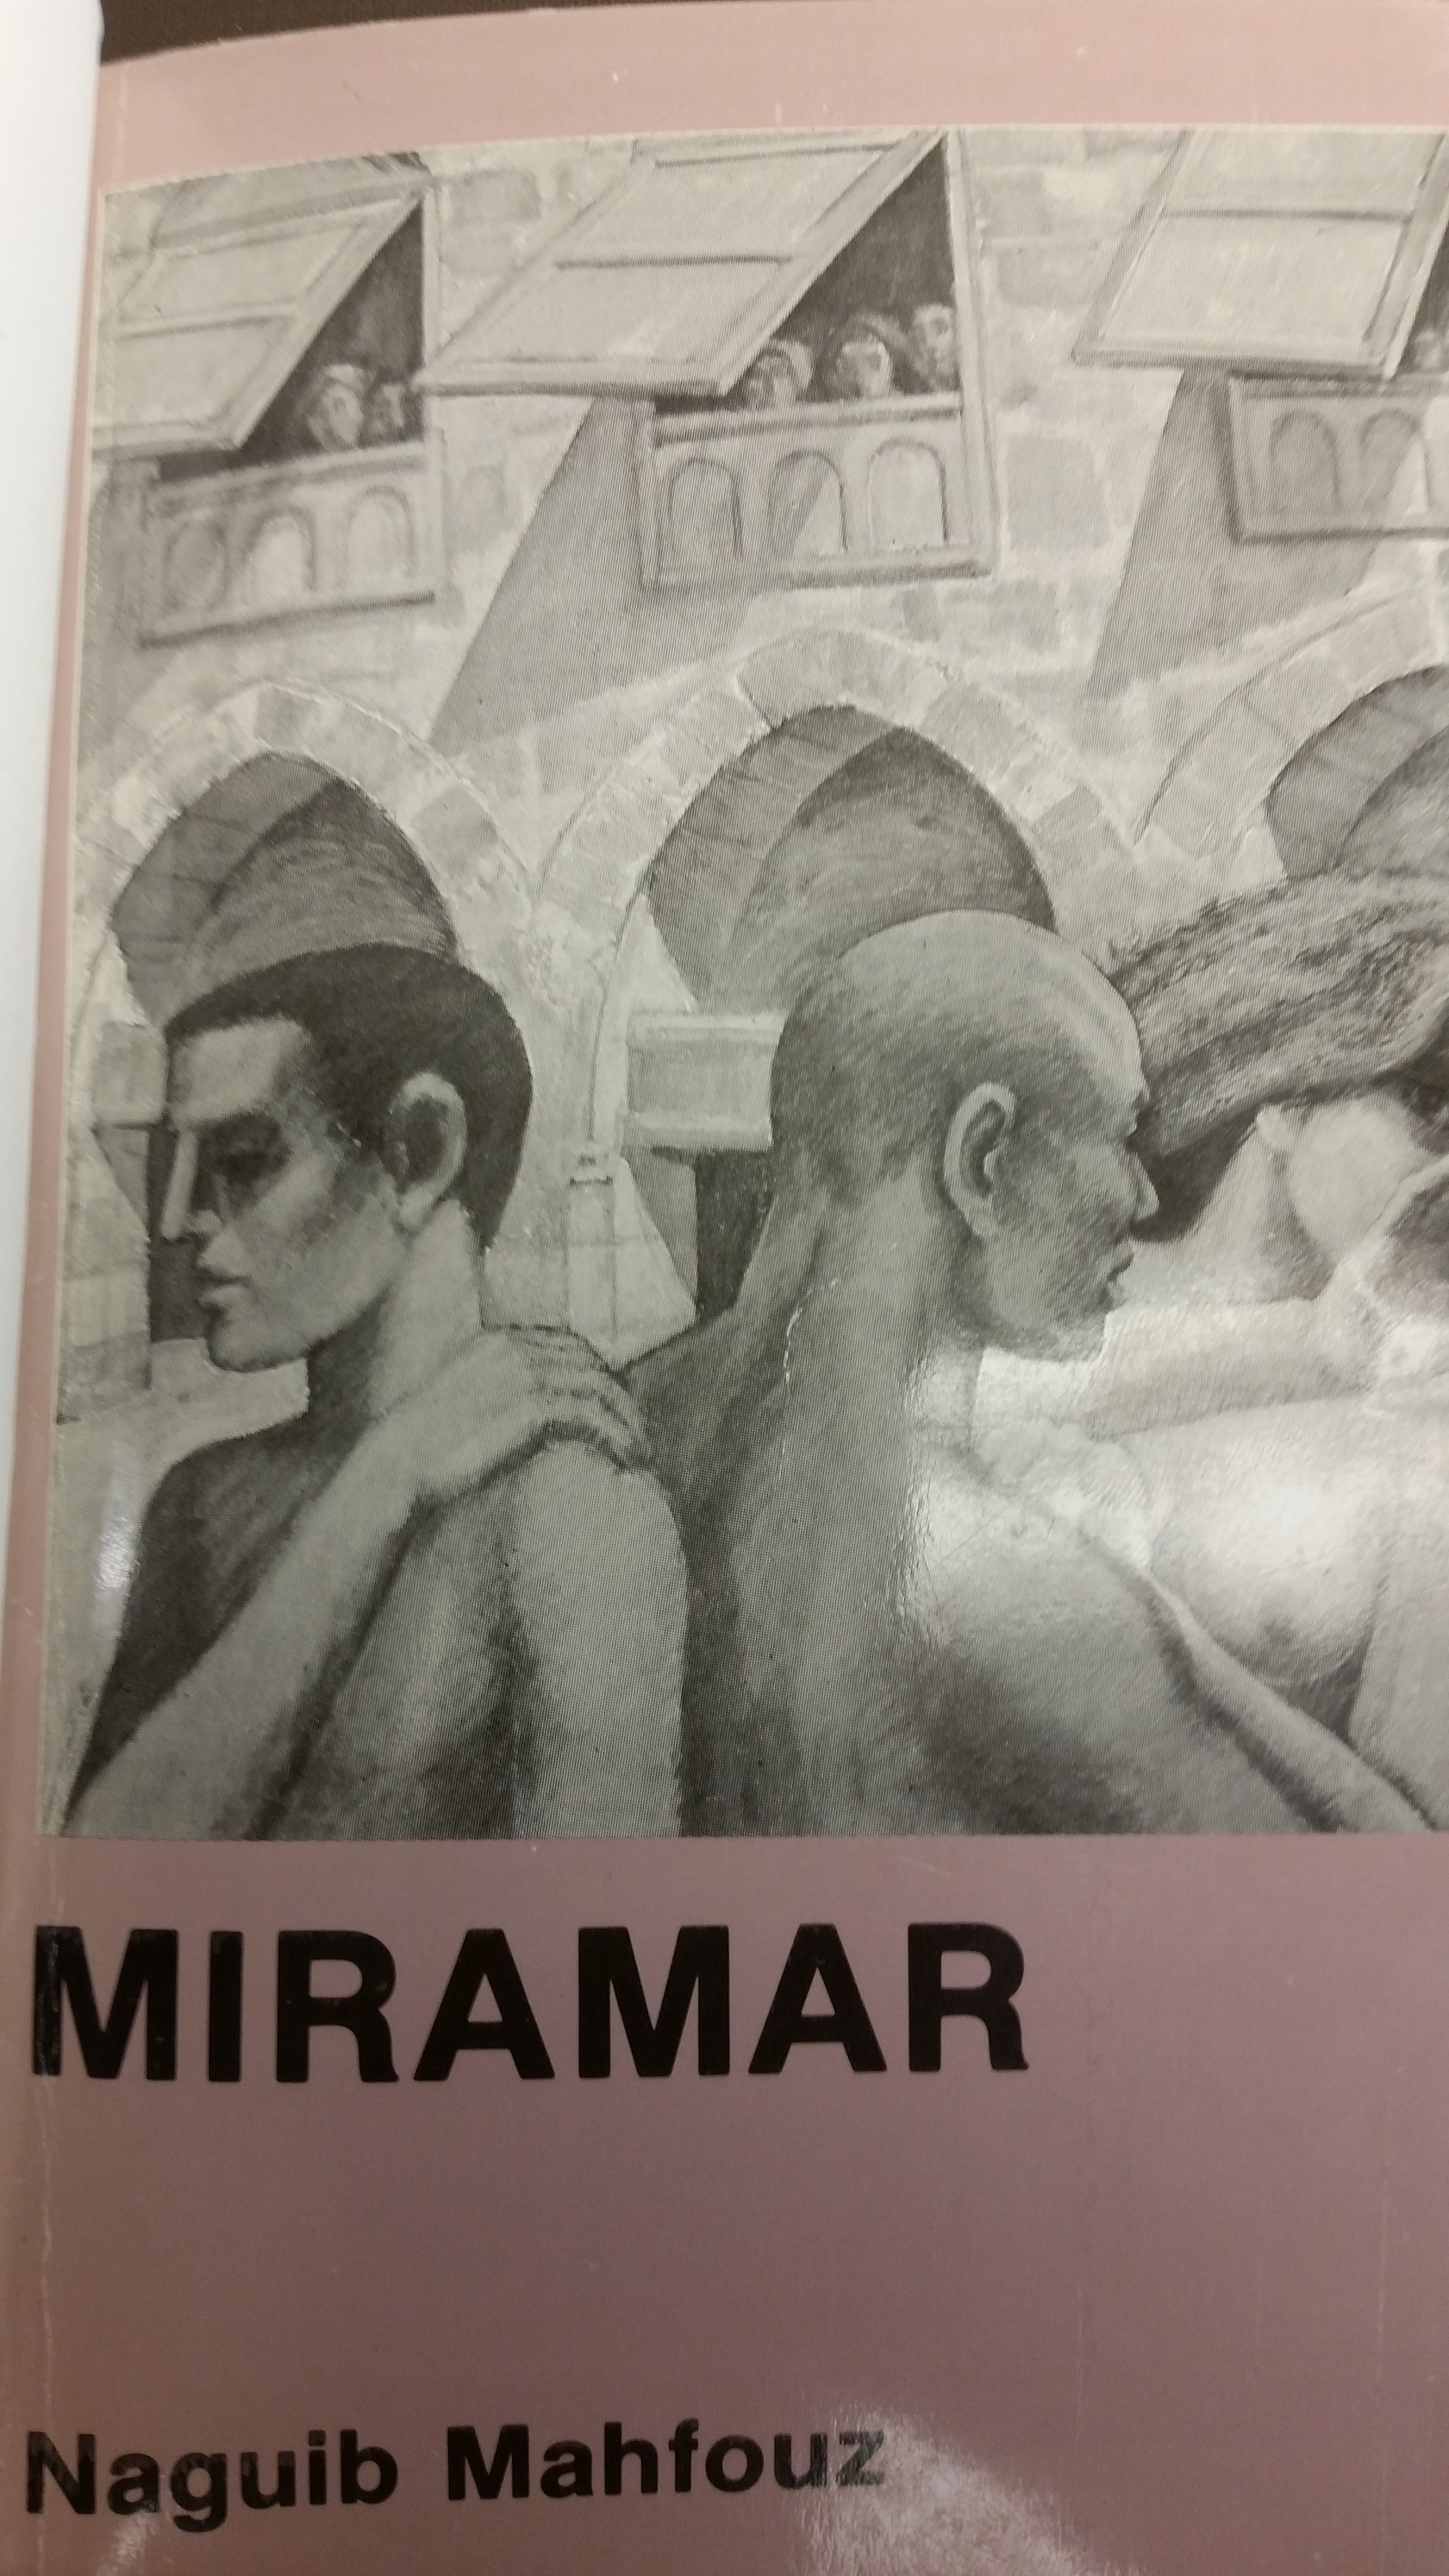 Naguib Mahfouz's  Miramar in English transation by Fatma Moussa Mahmoud, edited and revised by Maged el Kommos and John Rodenbeck, notes by Omar el Qudsy (Cairo: American University in Cairo Press, 1978).